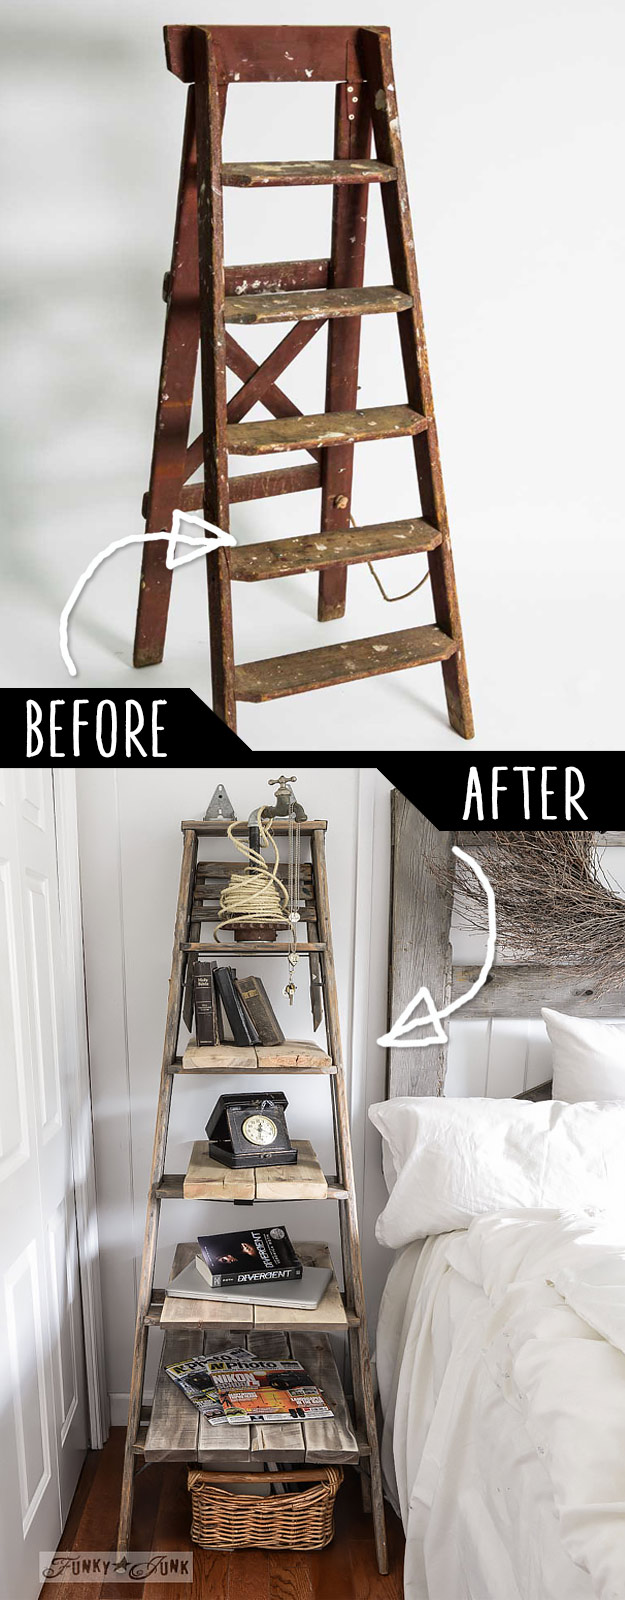 19 DIY Idea To Play With Old Furniture 3